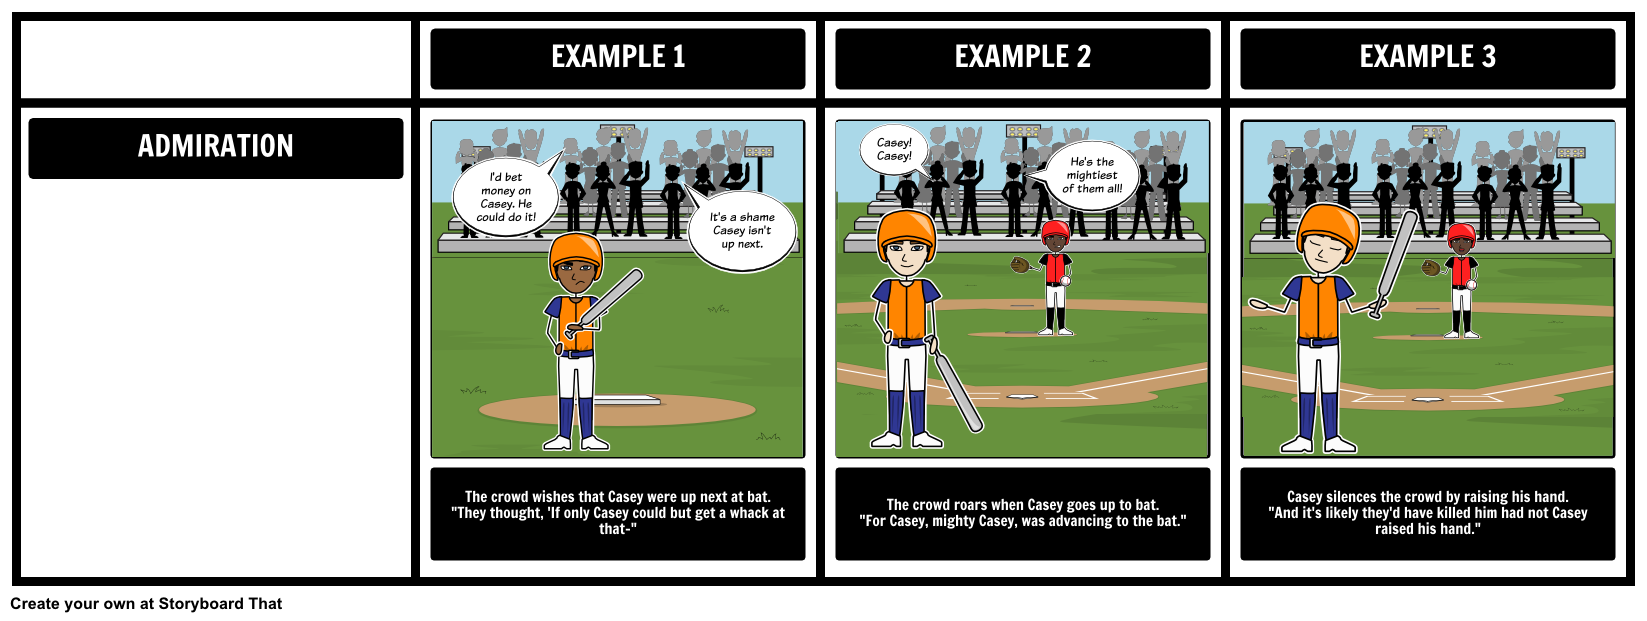 "Casey at the Bat - Theme: In this activity, students will identify a theme of ""Casey at the Bat"" by Ernest Lawrence Thayer and support it with evidence from the text."